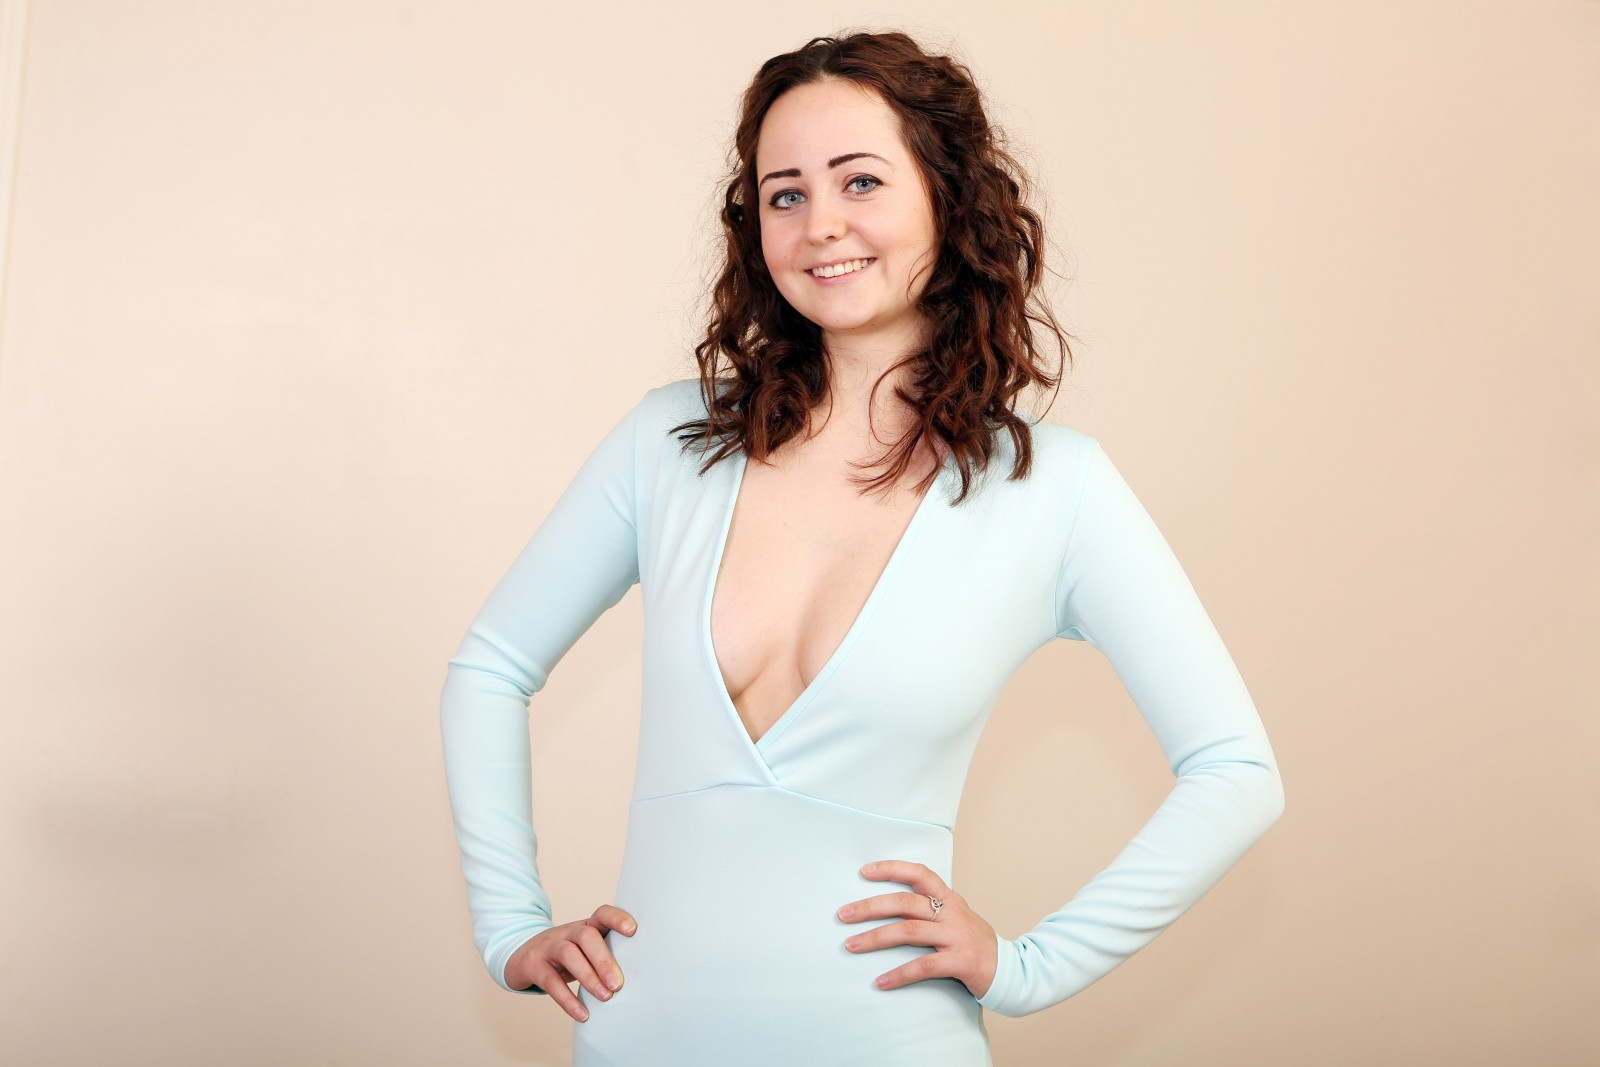 The night a tight dress saved the life of a lucky young woman